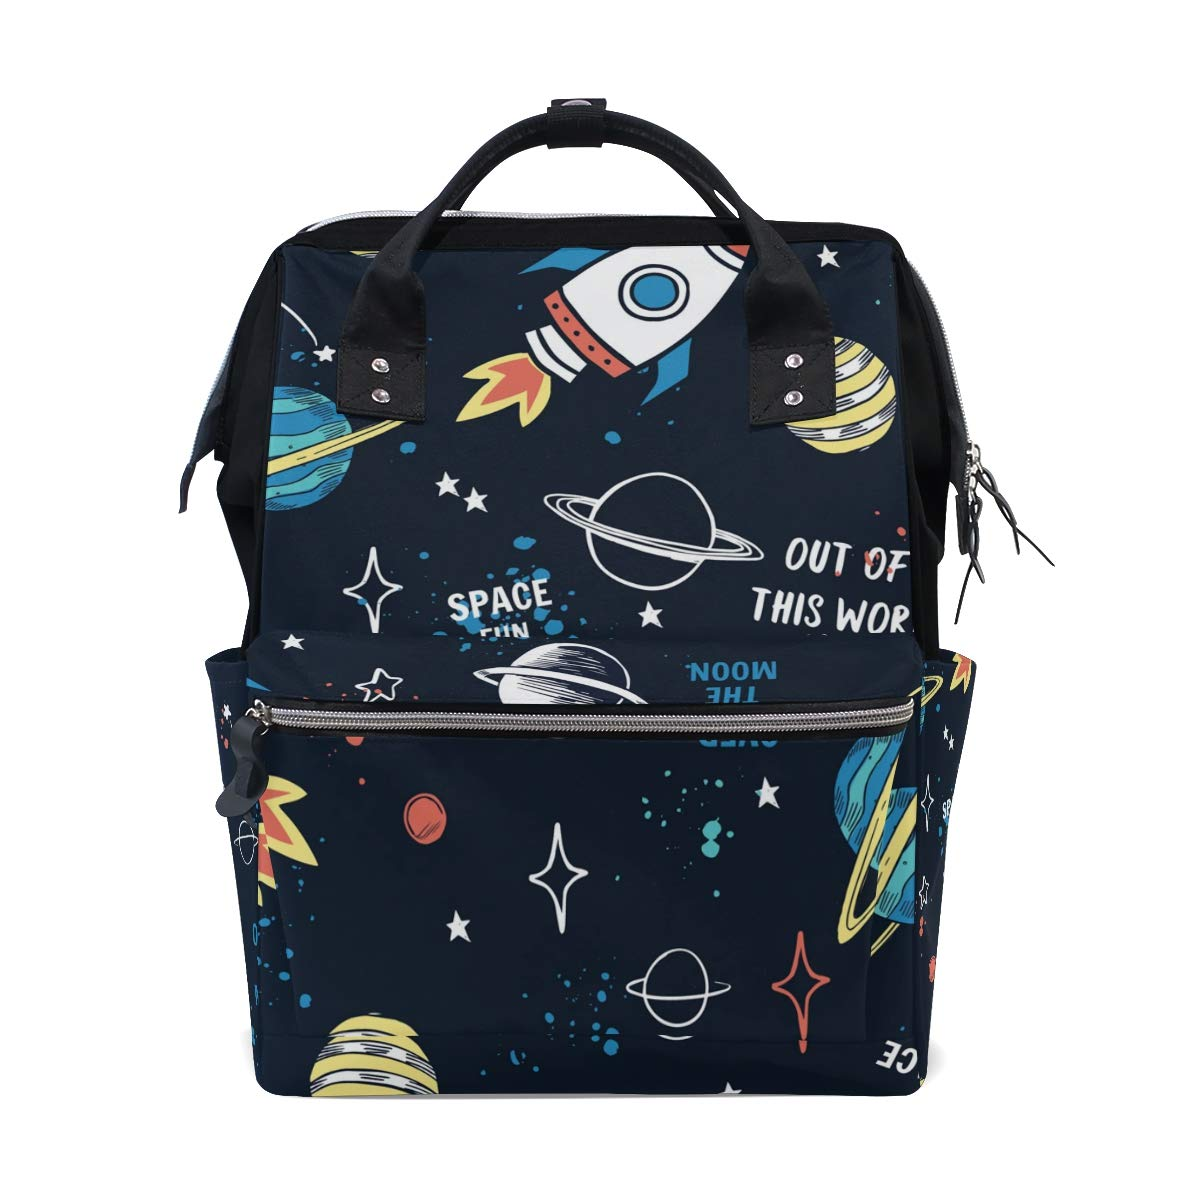 A Seed Baby Diaper Bag Backpack Tote Planet Rocket Star Galaxy Space Universe